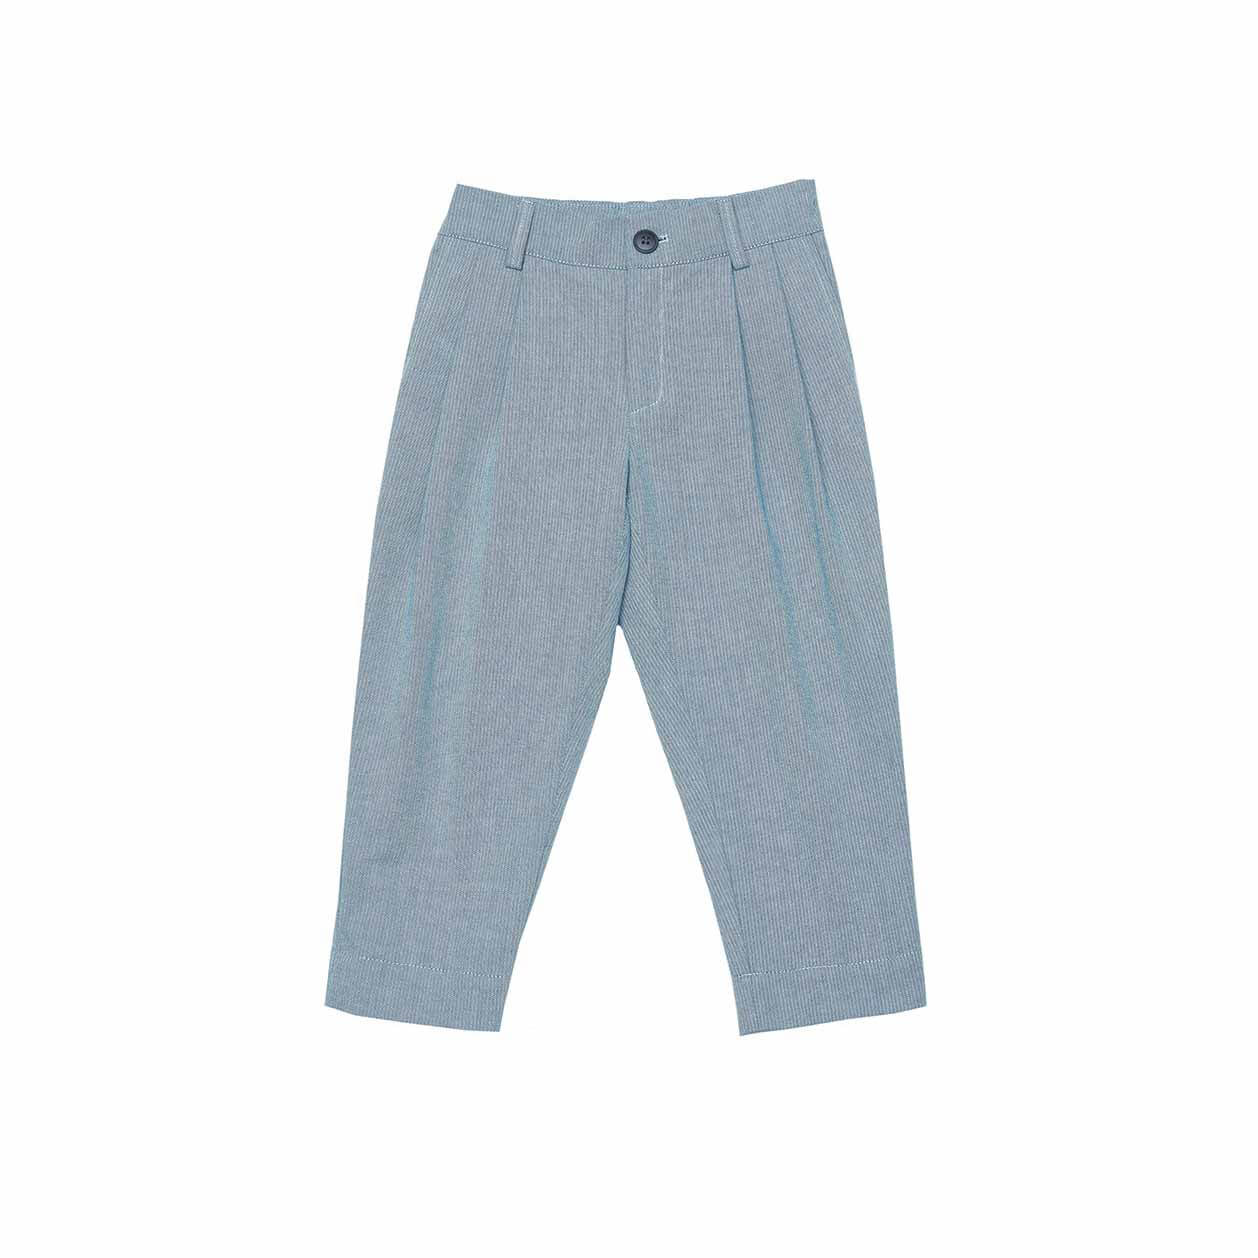 Pepe&Nika PepeandNika Little Apparel Kindermode Kids Fashion summery sommerlich vernal frühlingshaft Summery Cotton Trousers unisex boys girls organic bio elegant casual TROUSERS APPLE